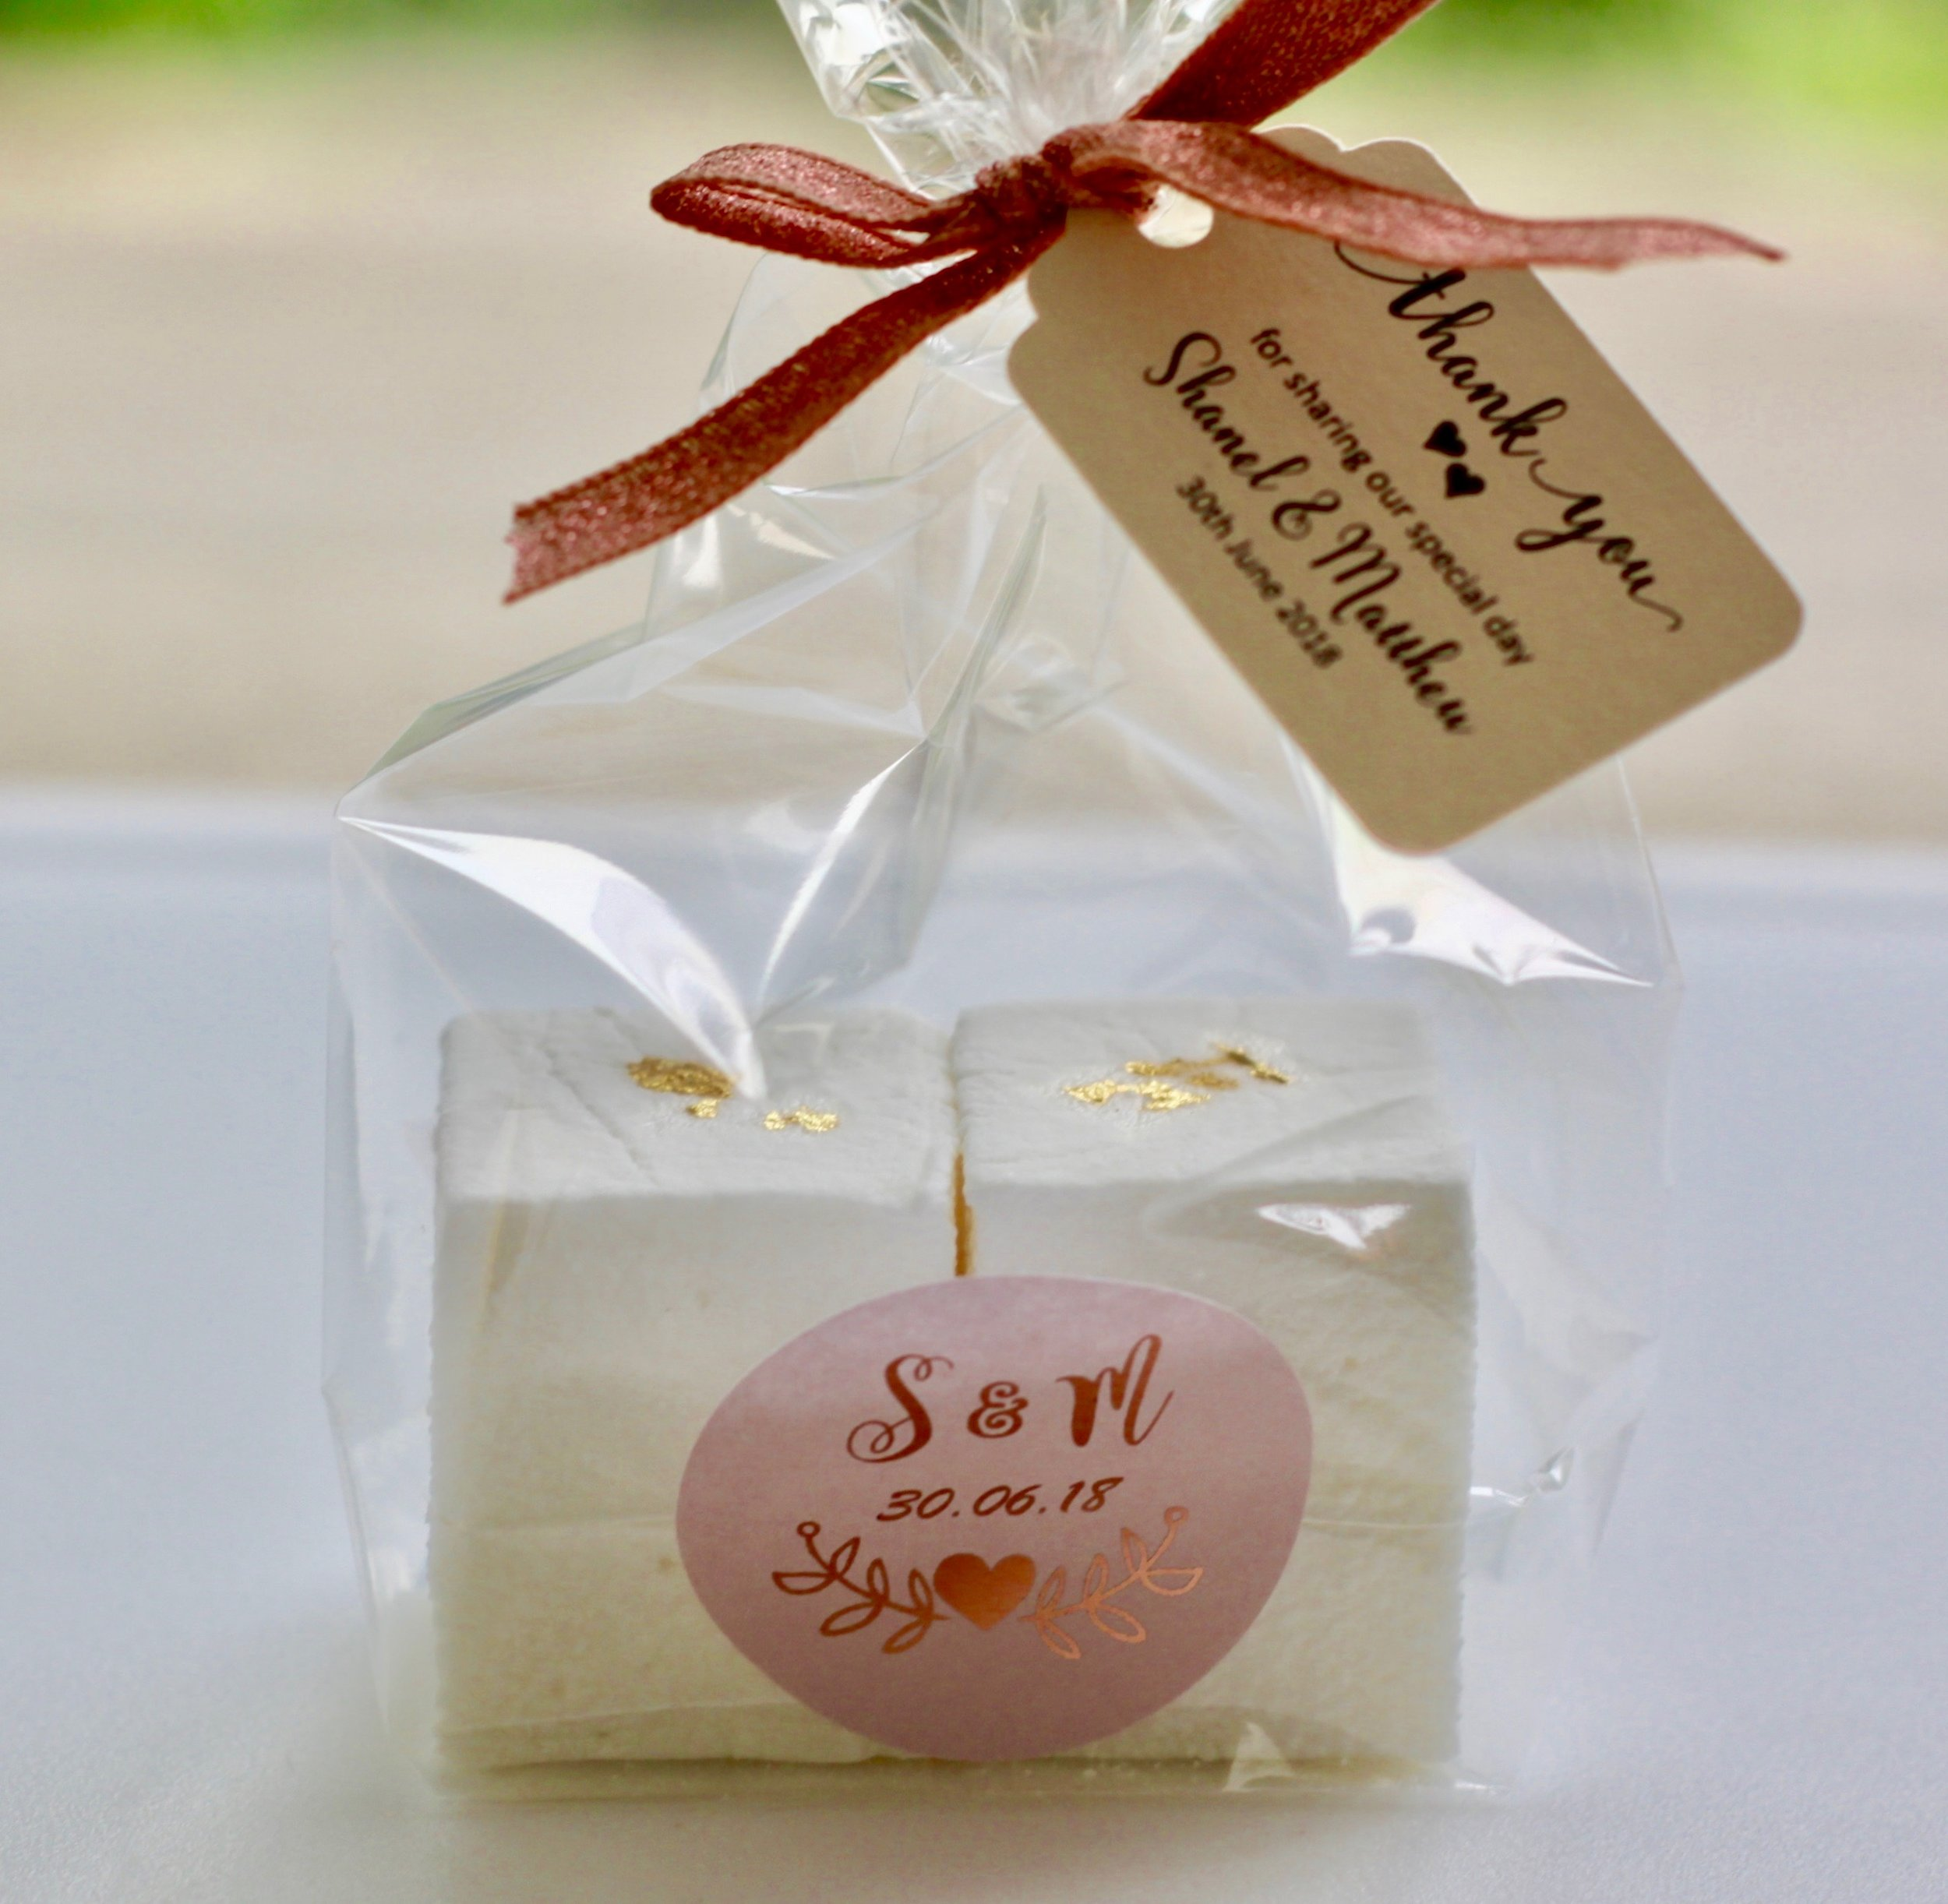 Wedding favours personalised with an individual message and hand tied with a ribbon to suit your wedding vibe